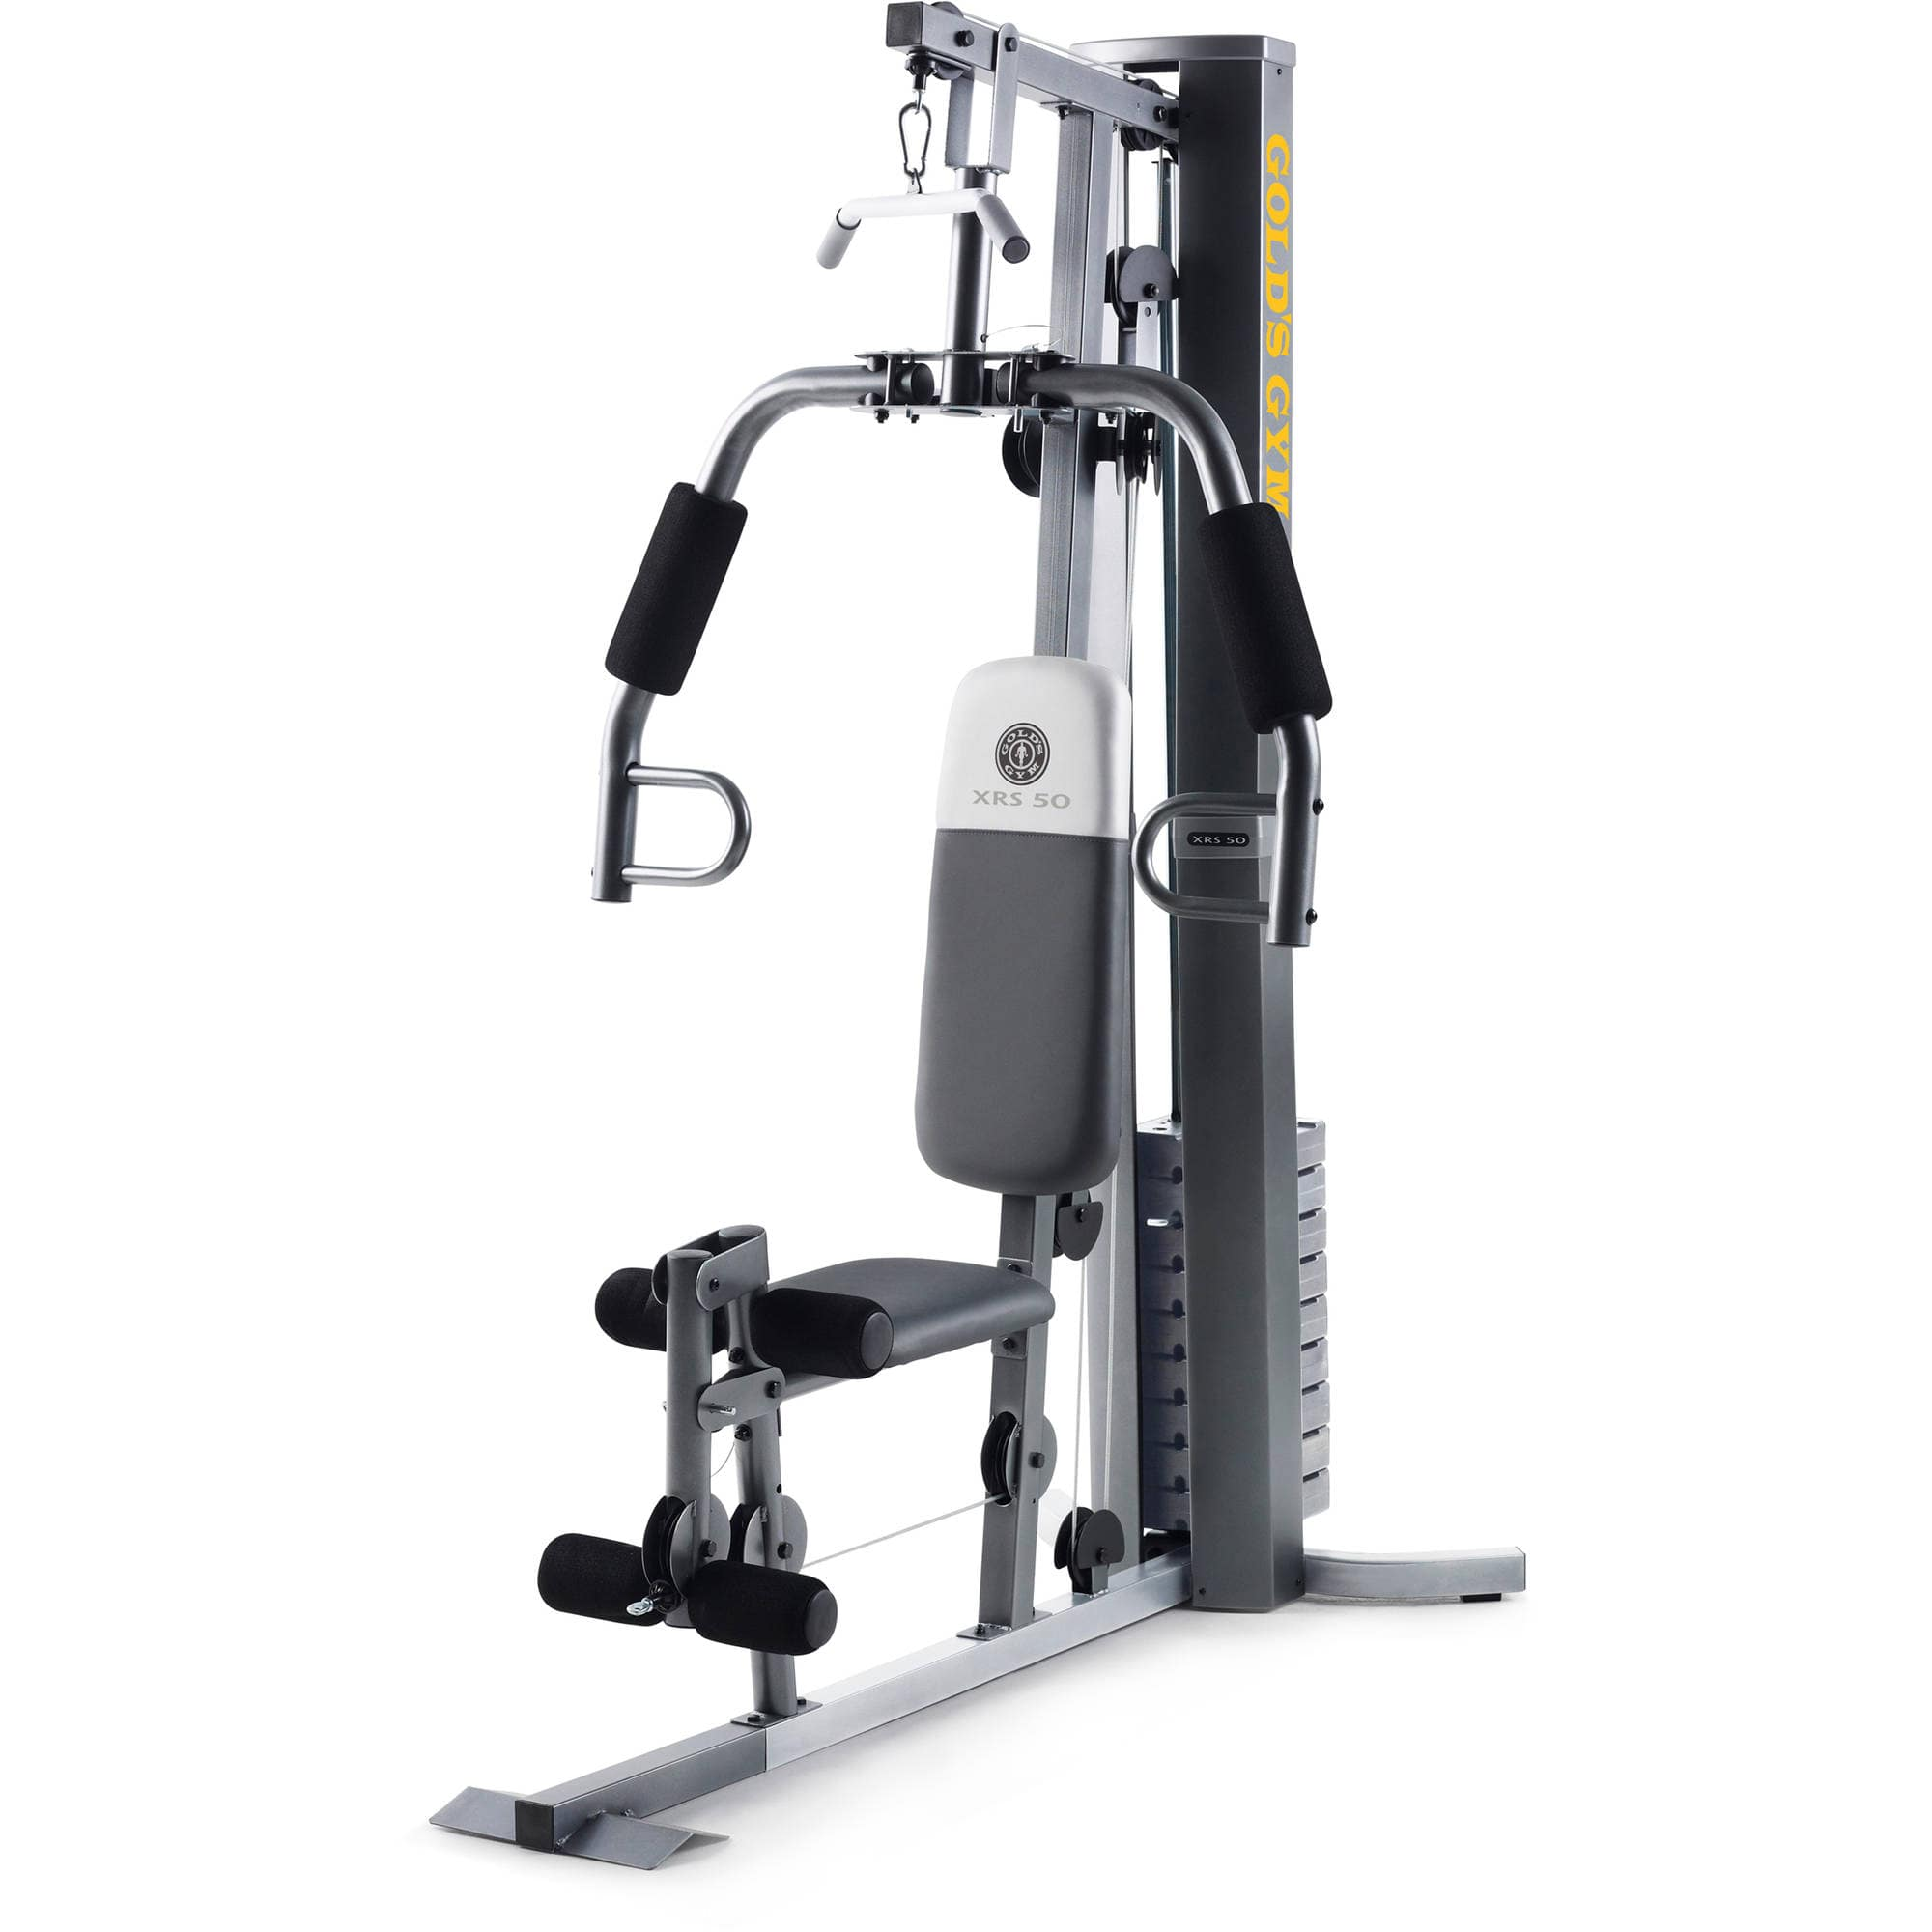 Gold's Gym XRS 50 Home Gym $124 or less @ WalMart YMMV